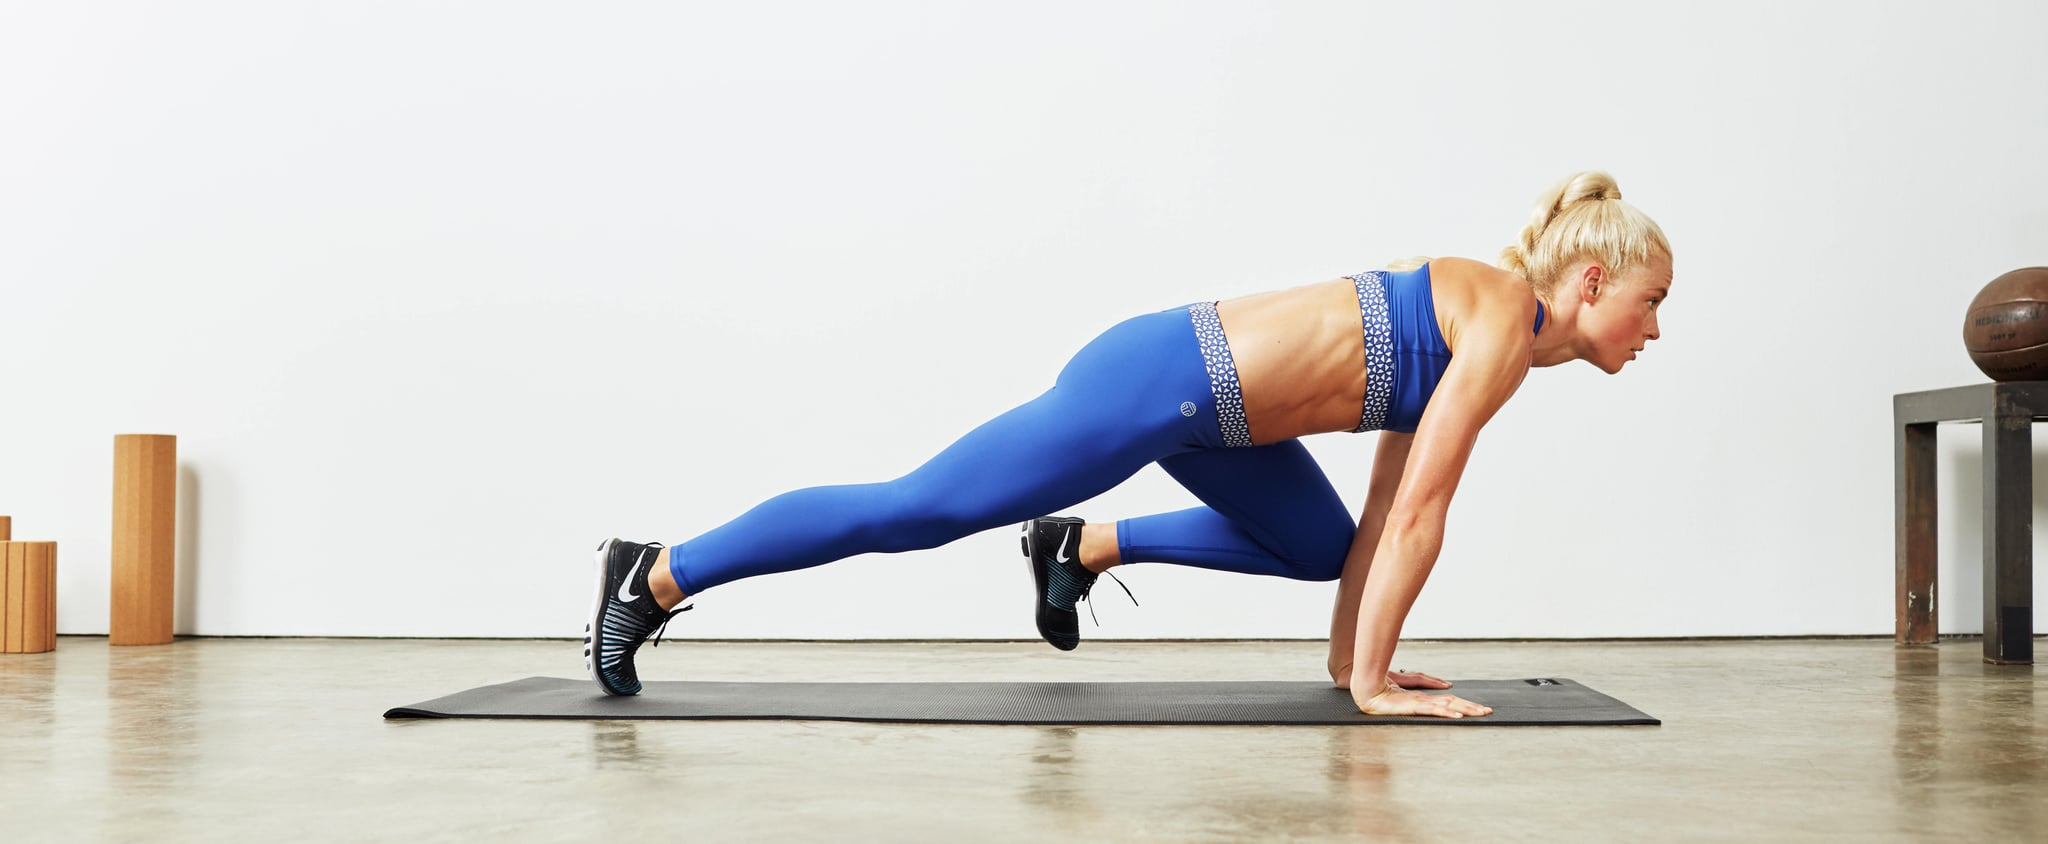 Best Bodyweight Exercises For Weight Loss